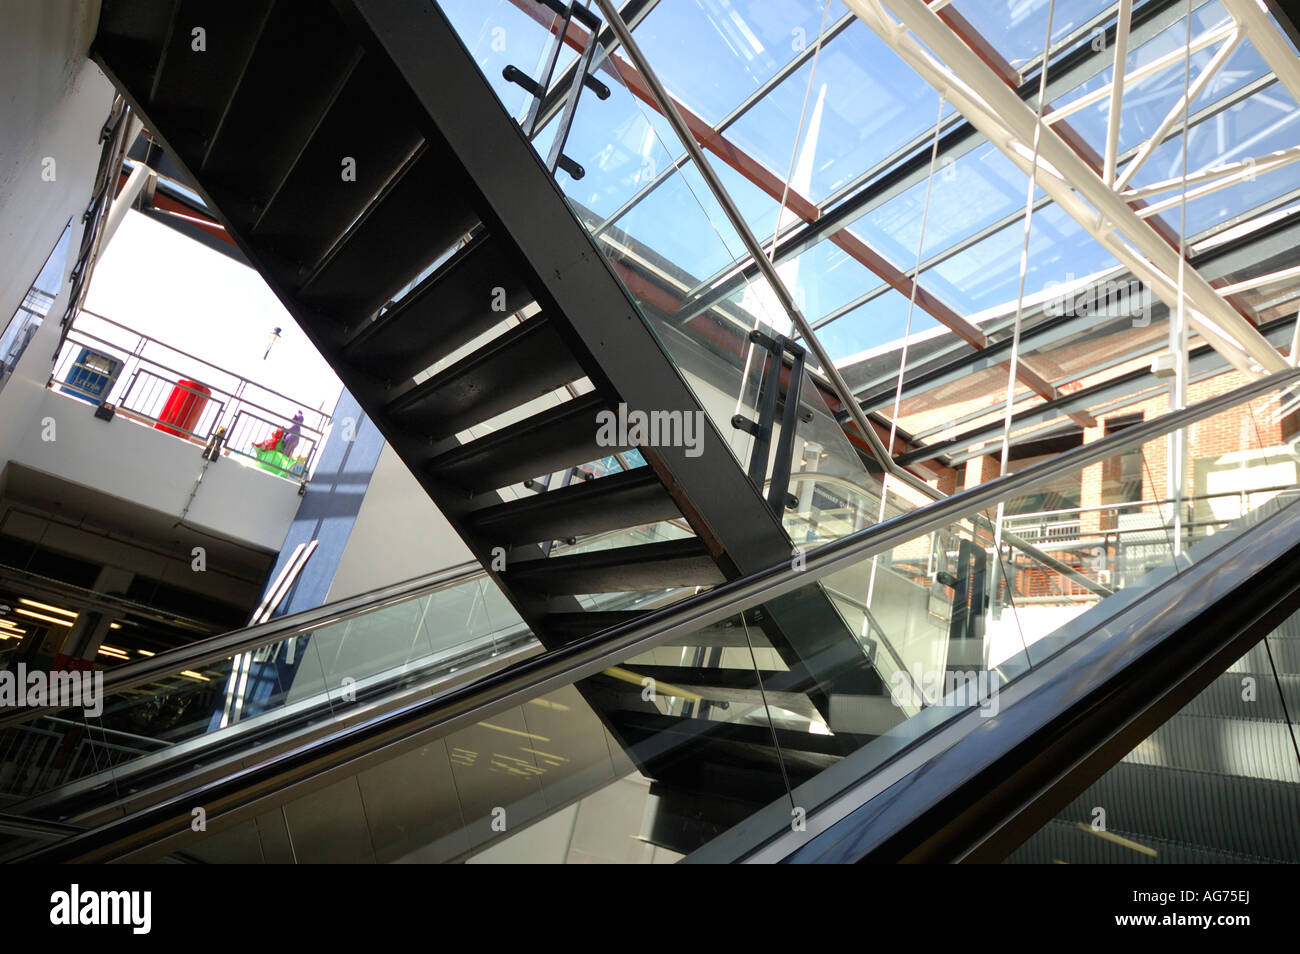 Exceptional Escalator, Moving Staircase, Change Over Below A Shopping Centre